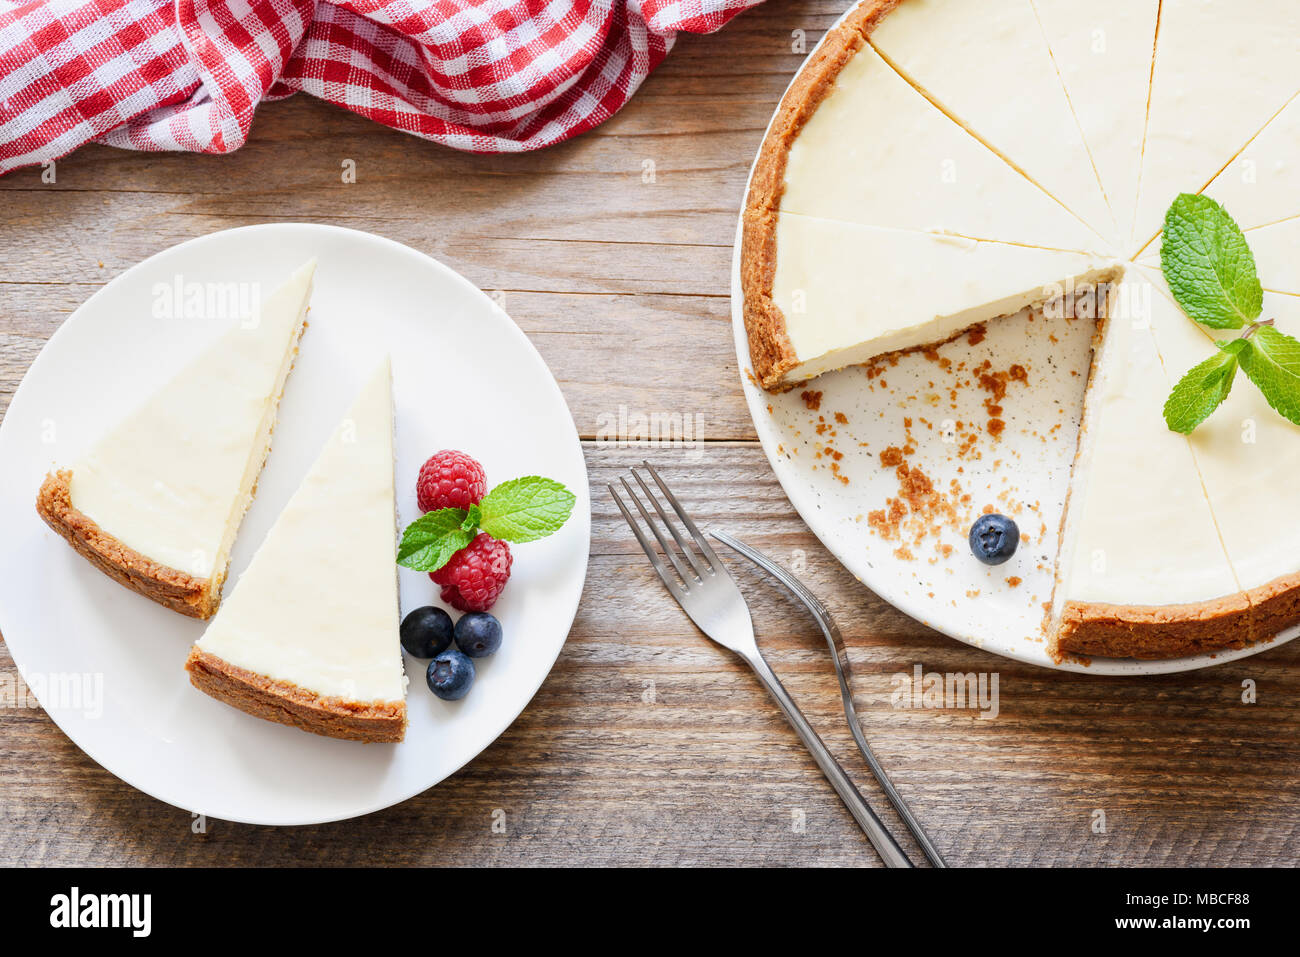 Classical New York Cheesecake on rustic wood table background, top view. Horizontal composition - Stock Image